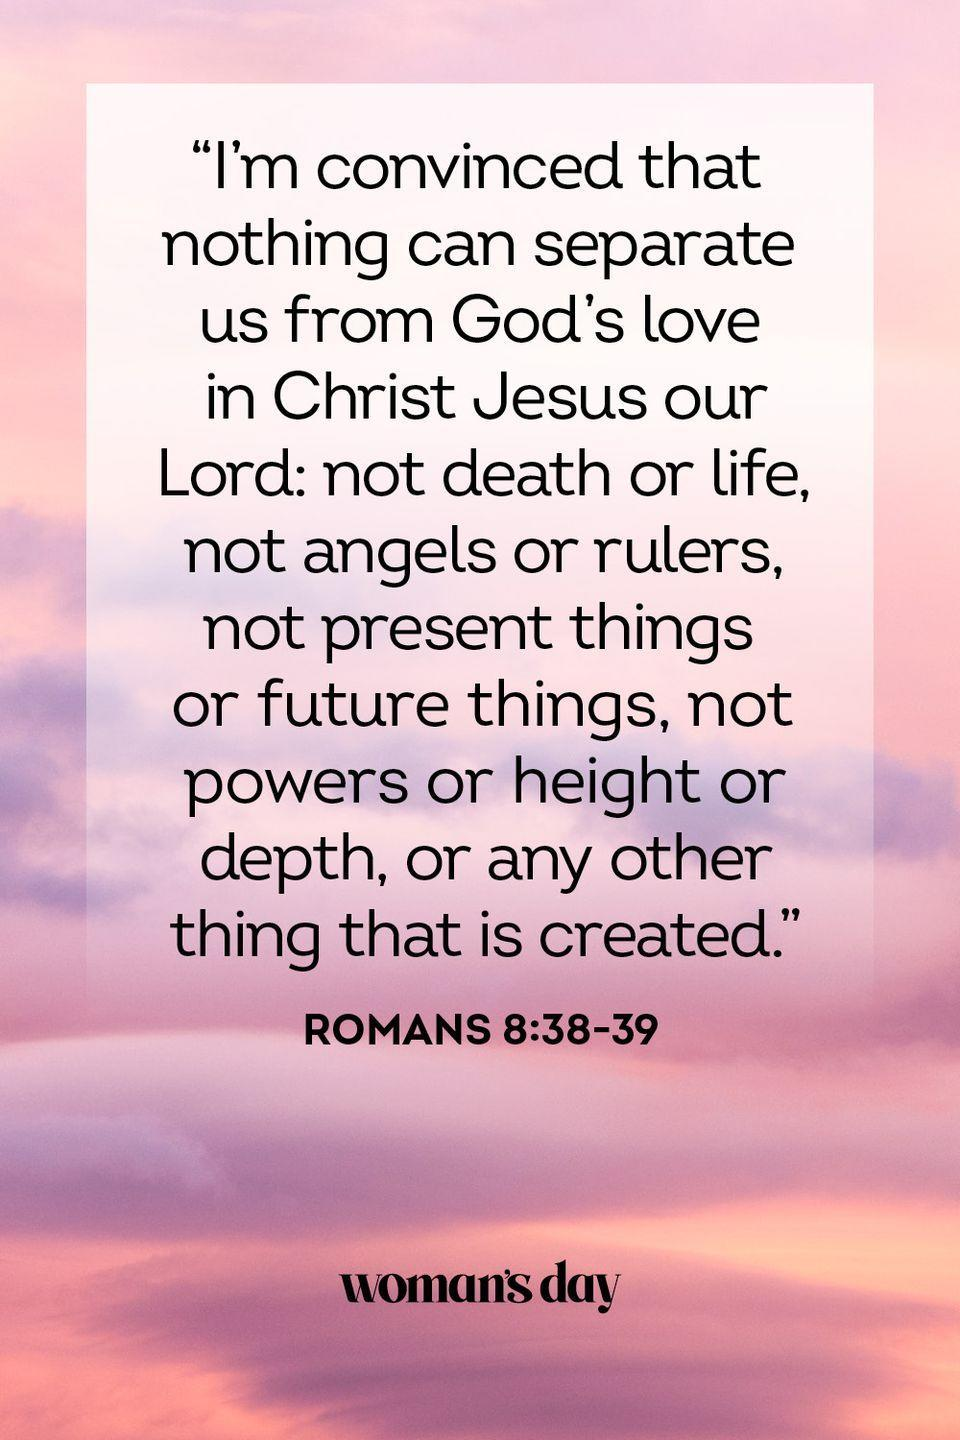 """<p>""""I'm convinced that nothing can separate us from God's love in Christ Jesus our Lord: not death or life, not angels or rulers, not present things or future things, not powers or height or depth, or any other thing that is created."""" </p><p><strong>The Good News</strong>: Through the everlasting love of the Lord, God will partake in the journey with you through the trials and tribulations of life.</p>"""